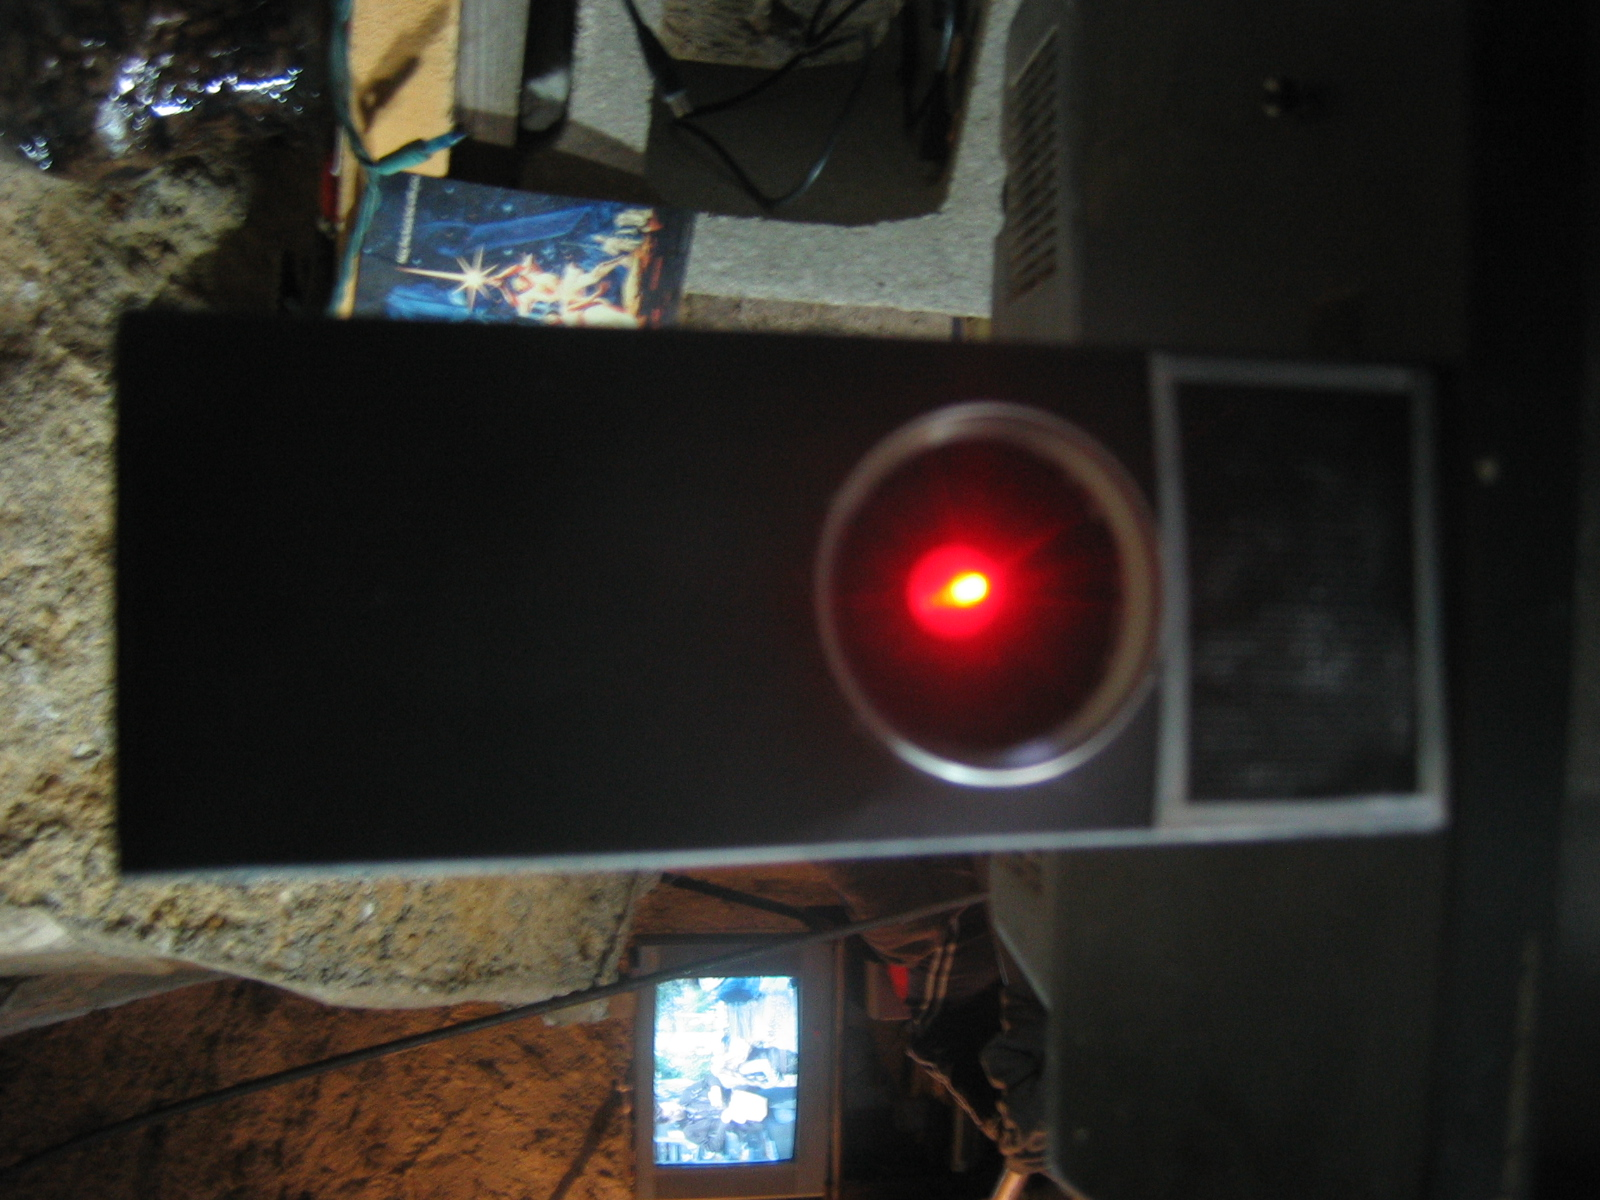 simply build your own HAL 9000